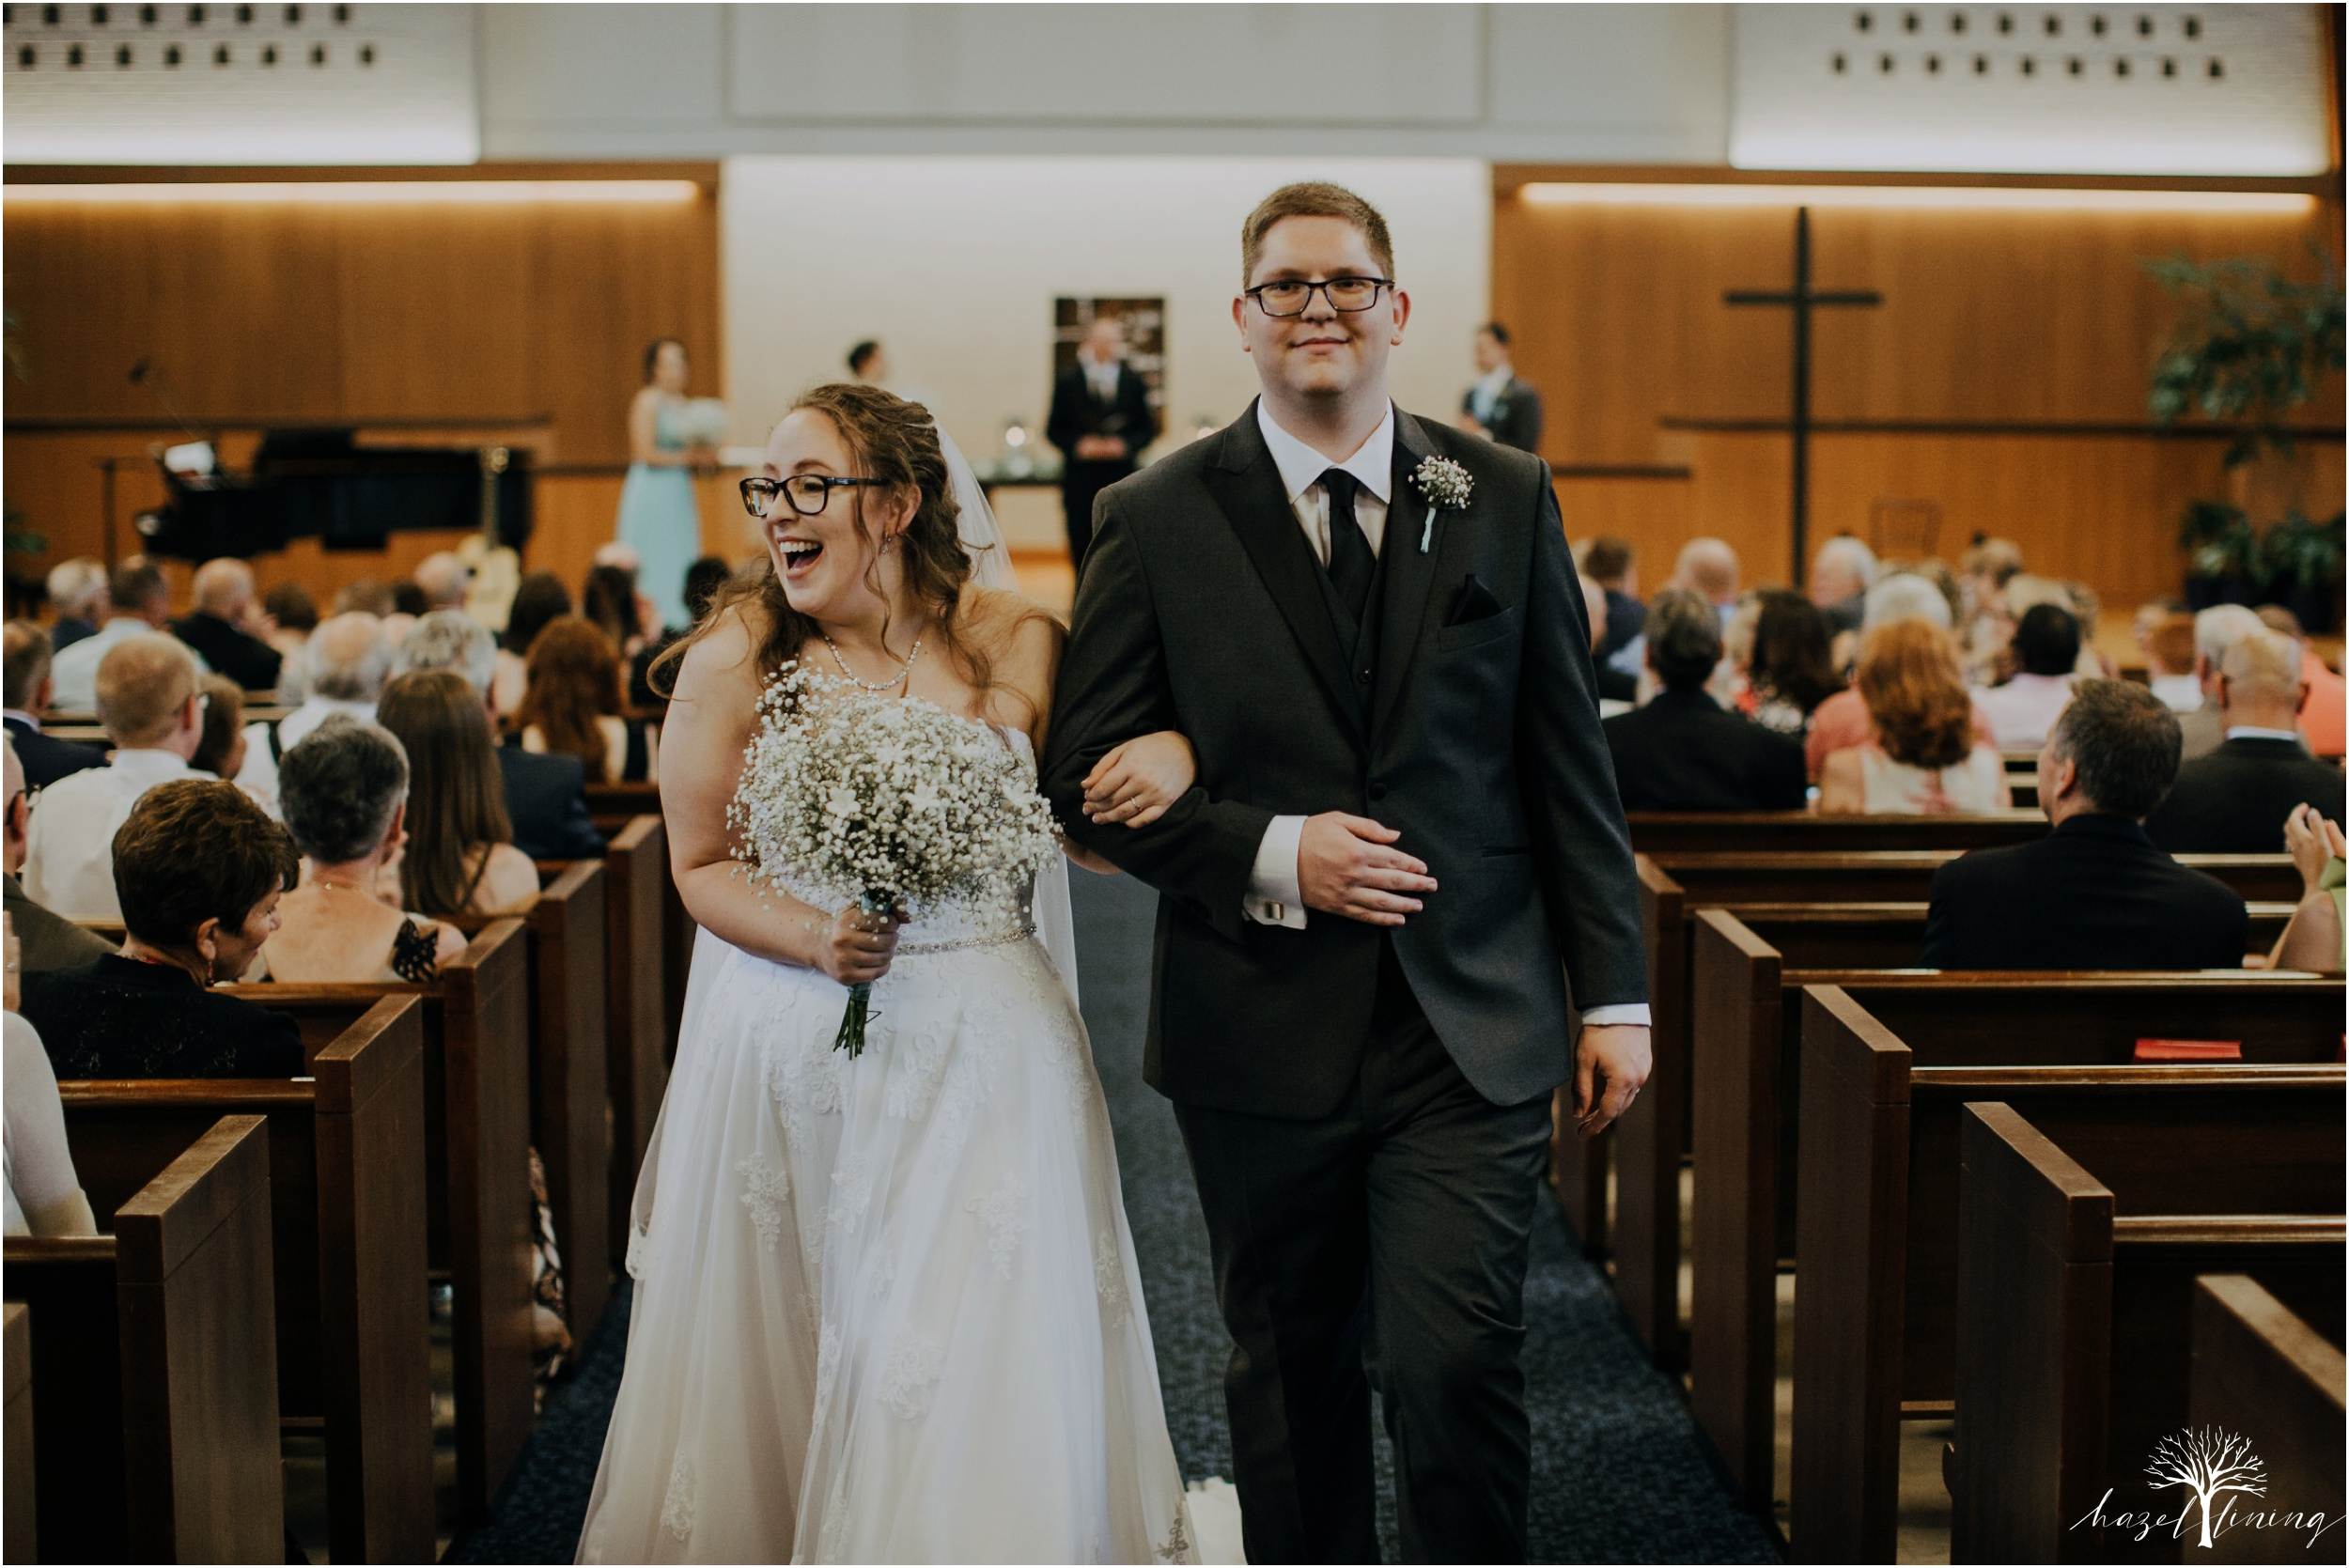 laura-zach-mccaskill-harmony-hall-lebanon-valley-college-summer-wedding-hazel-lining-photography-destination-elopement-wedding-engagement-photography_0074.jpg